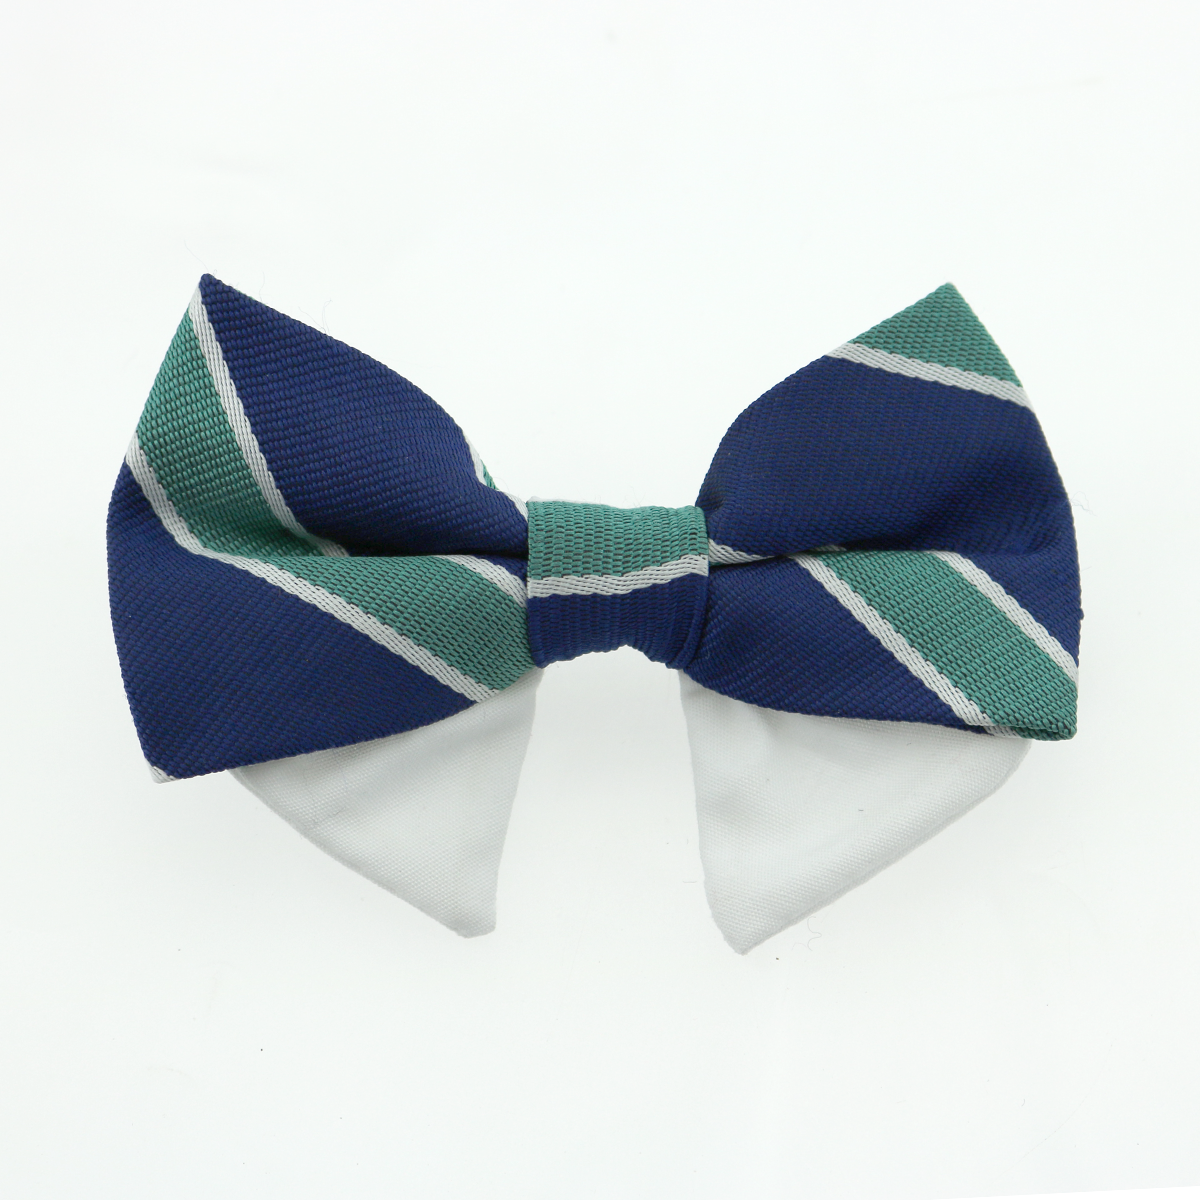 Dog Bow Tie Collar Attachment by Doggie Design - Navy Blue and Green Stripe